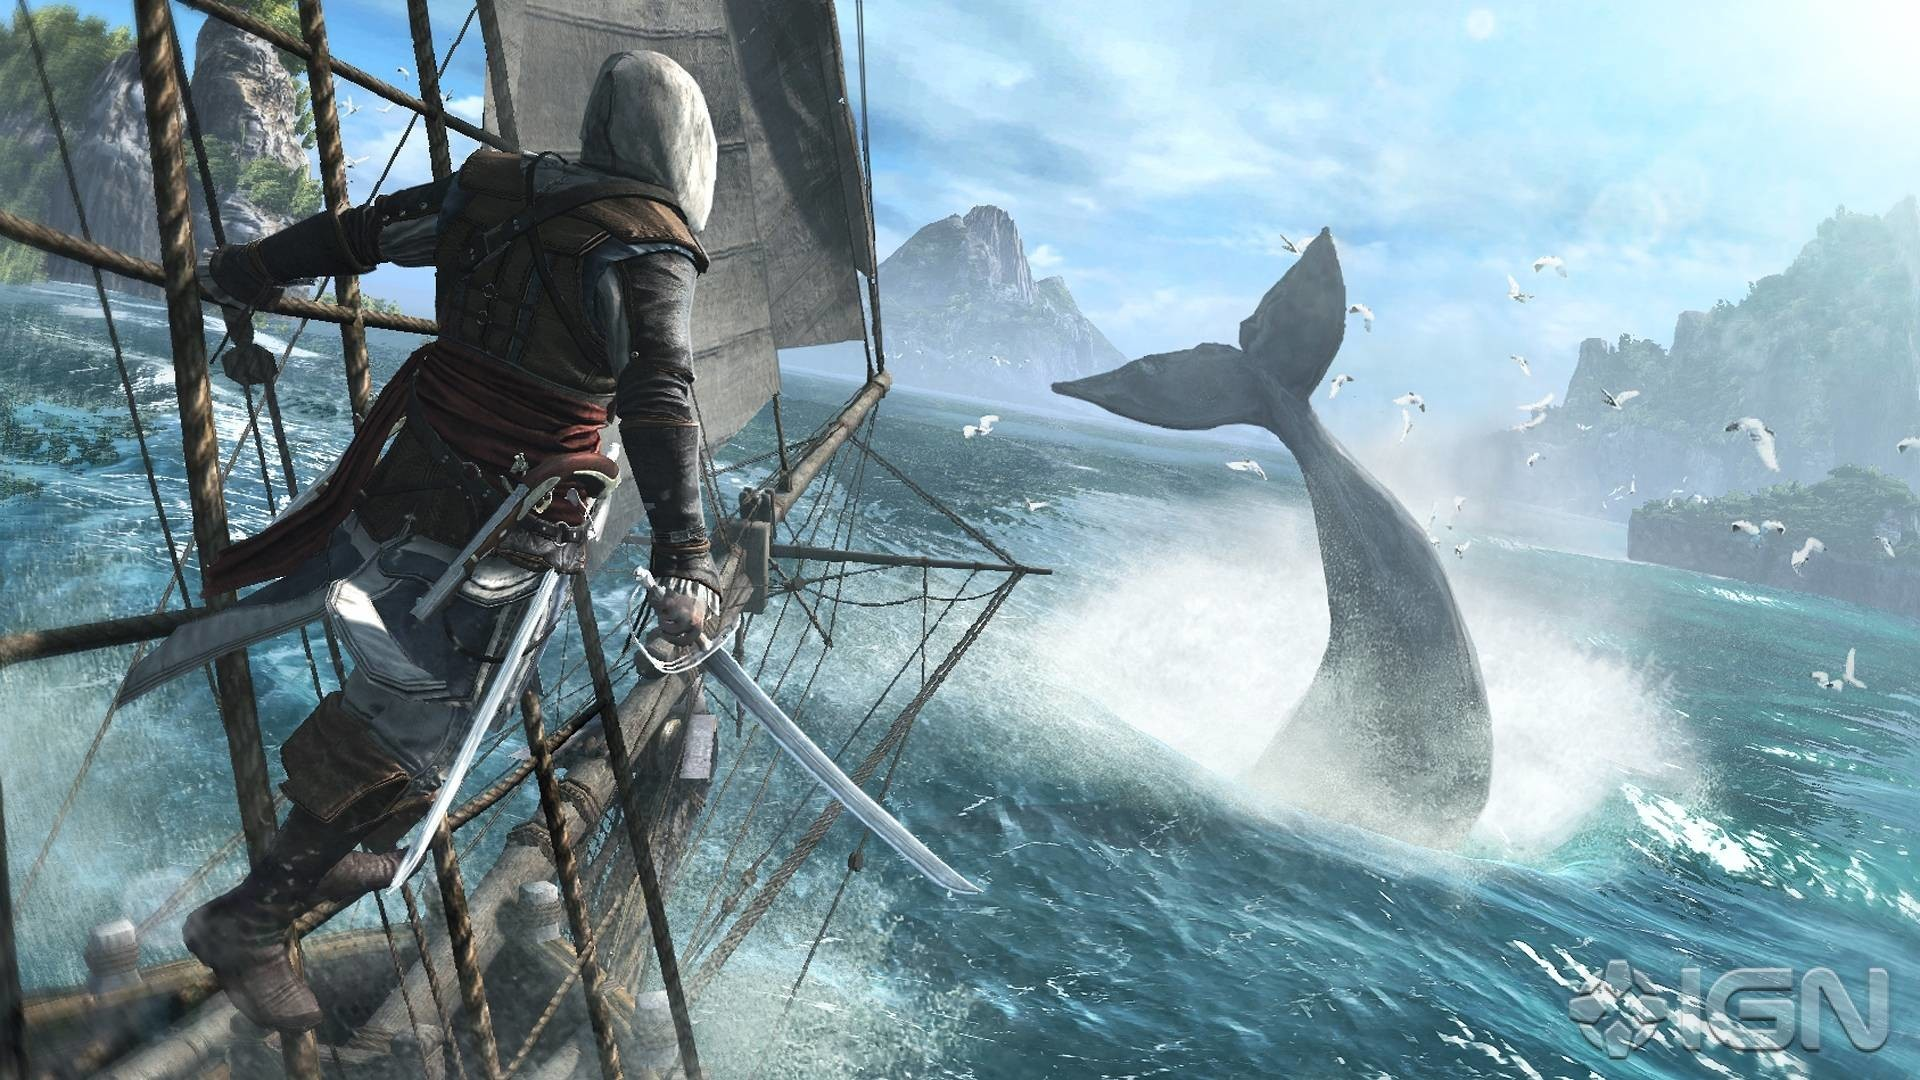 506551 download ac4 black flag wallpaper 1920x1080 for iphone 7 1920x1080